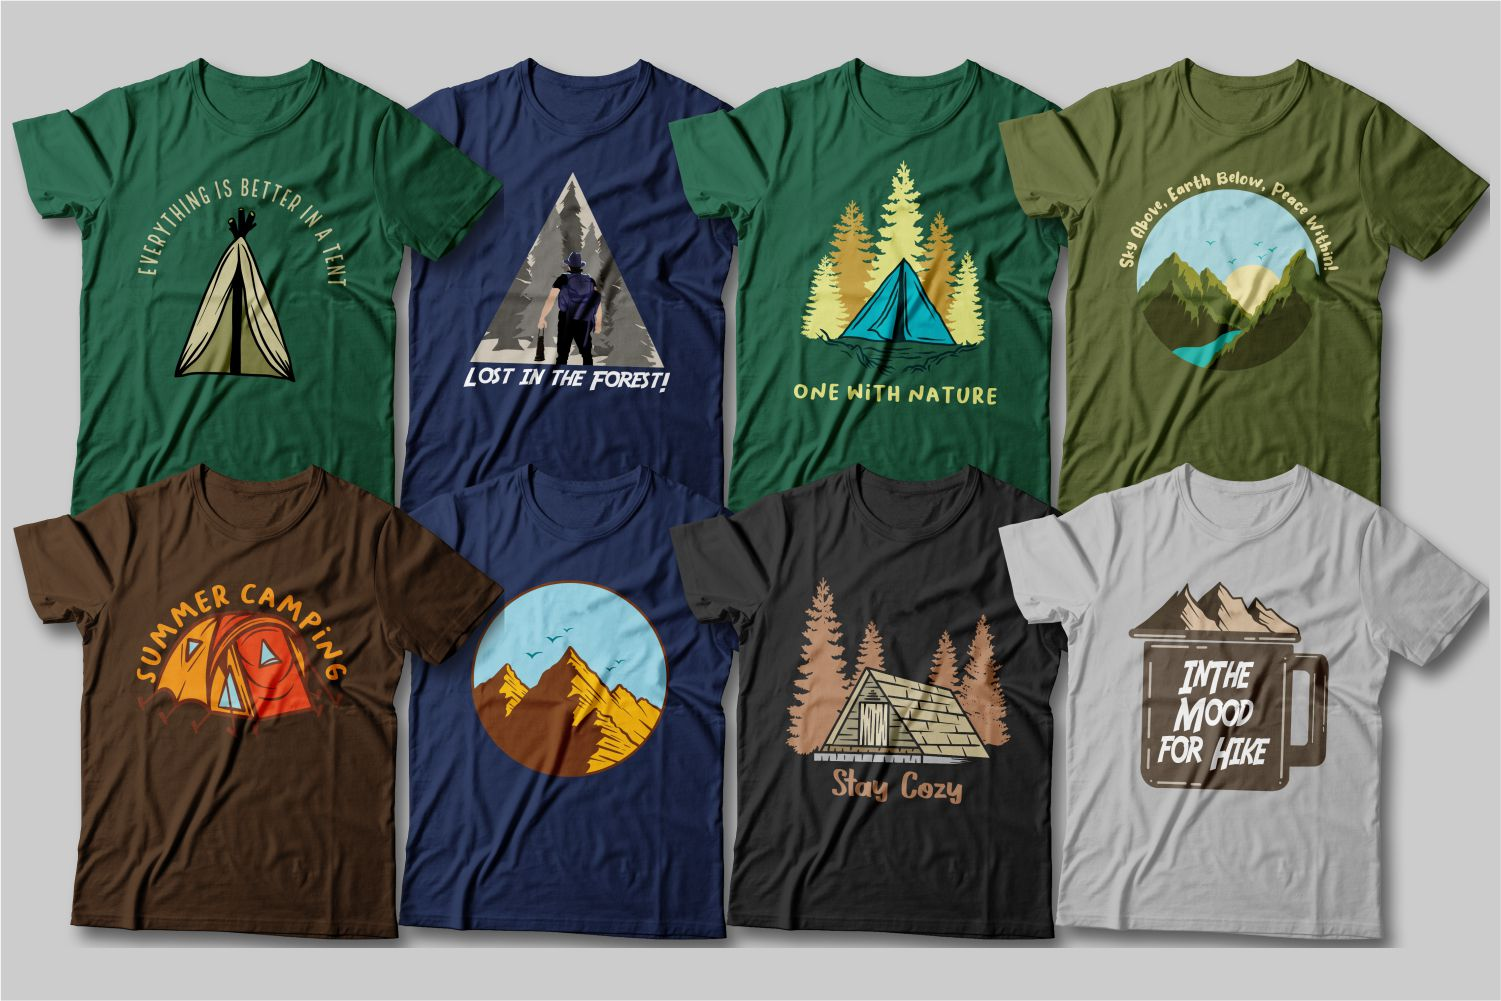 T-shirts of a classic cut, light colors with the image of mountains and tent cities.